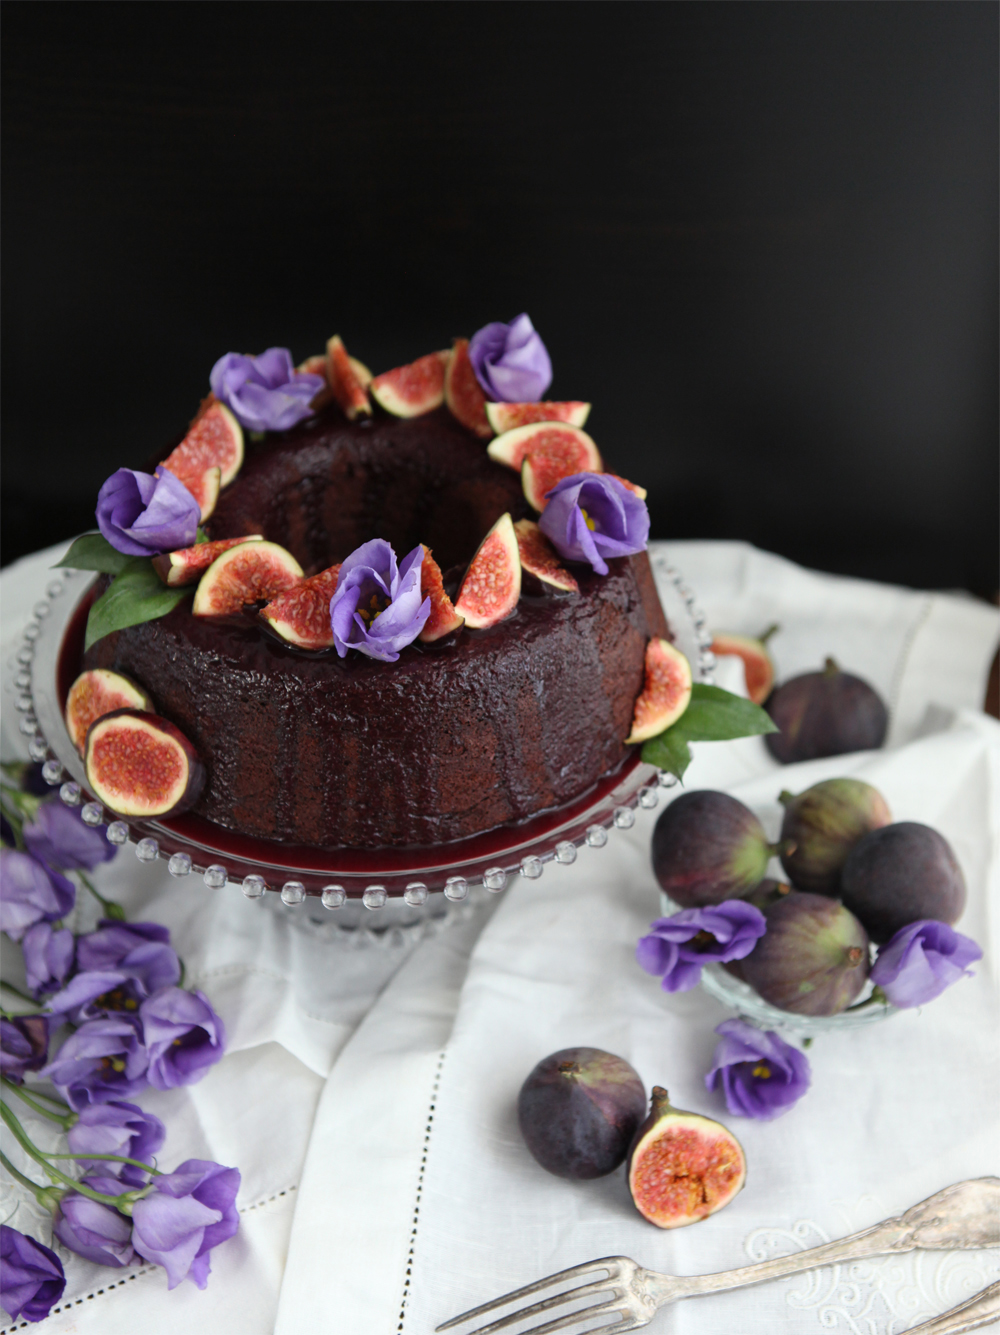 Don't mess with the rabbit - Gateau chocolat-mures-figues 2